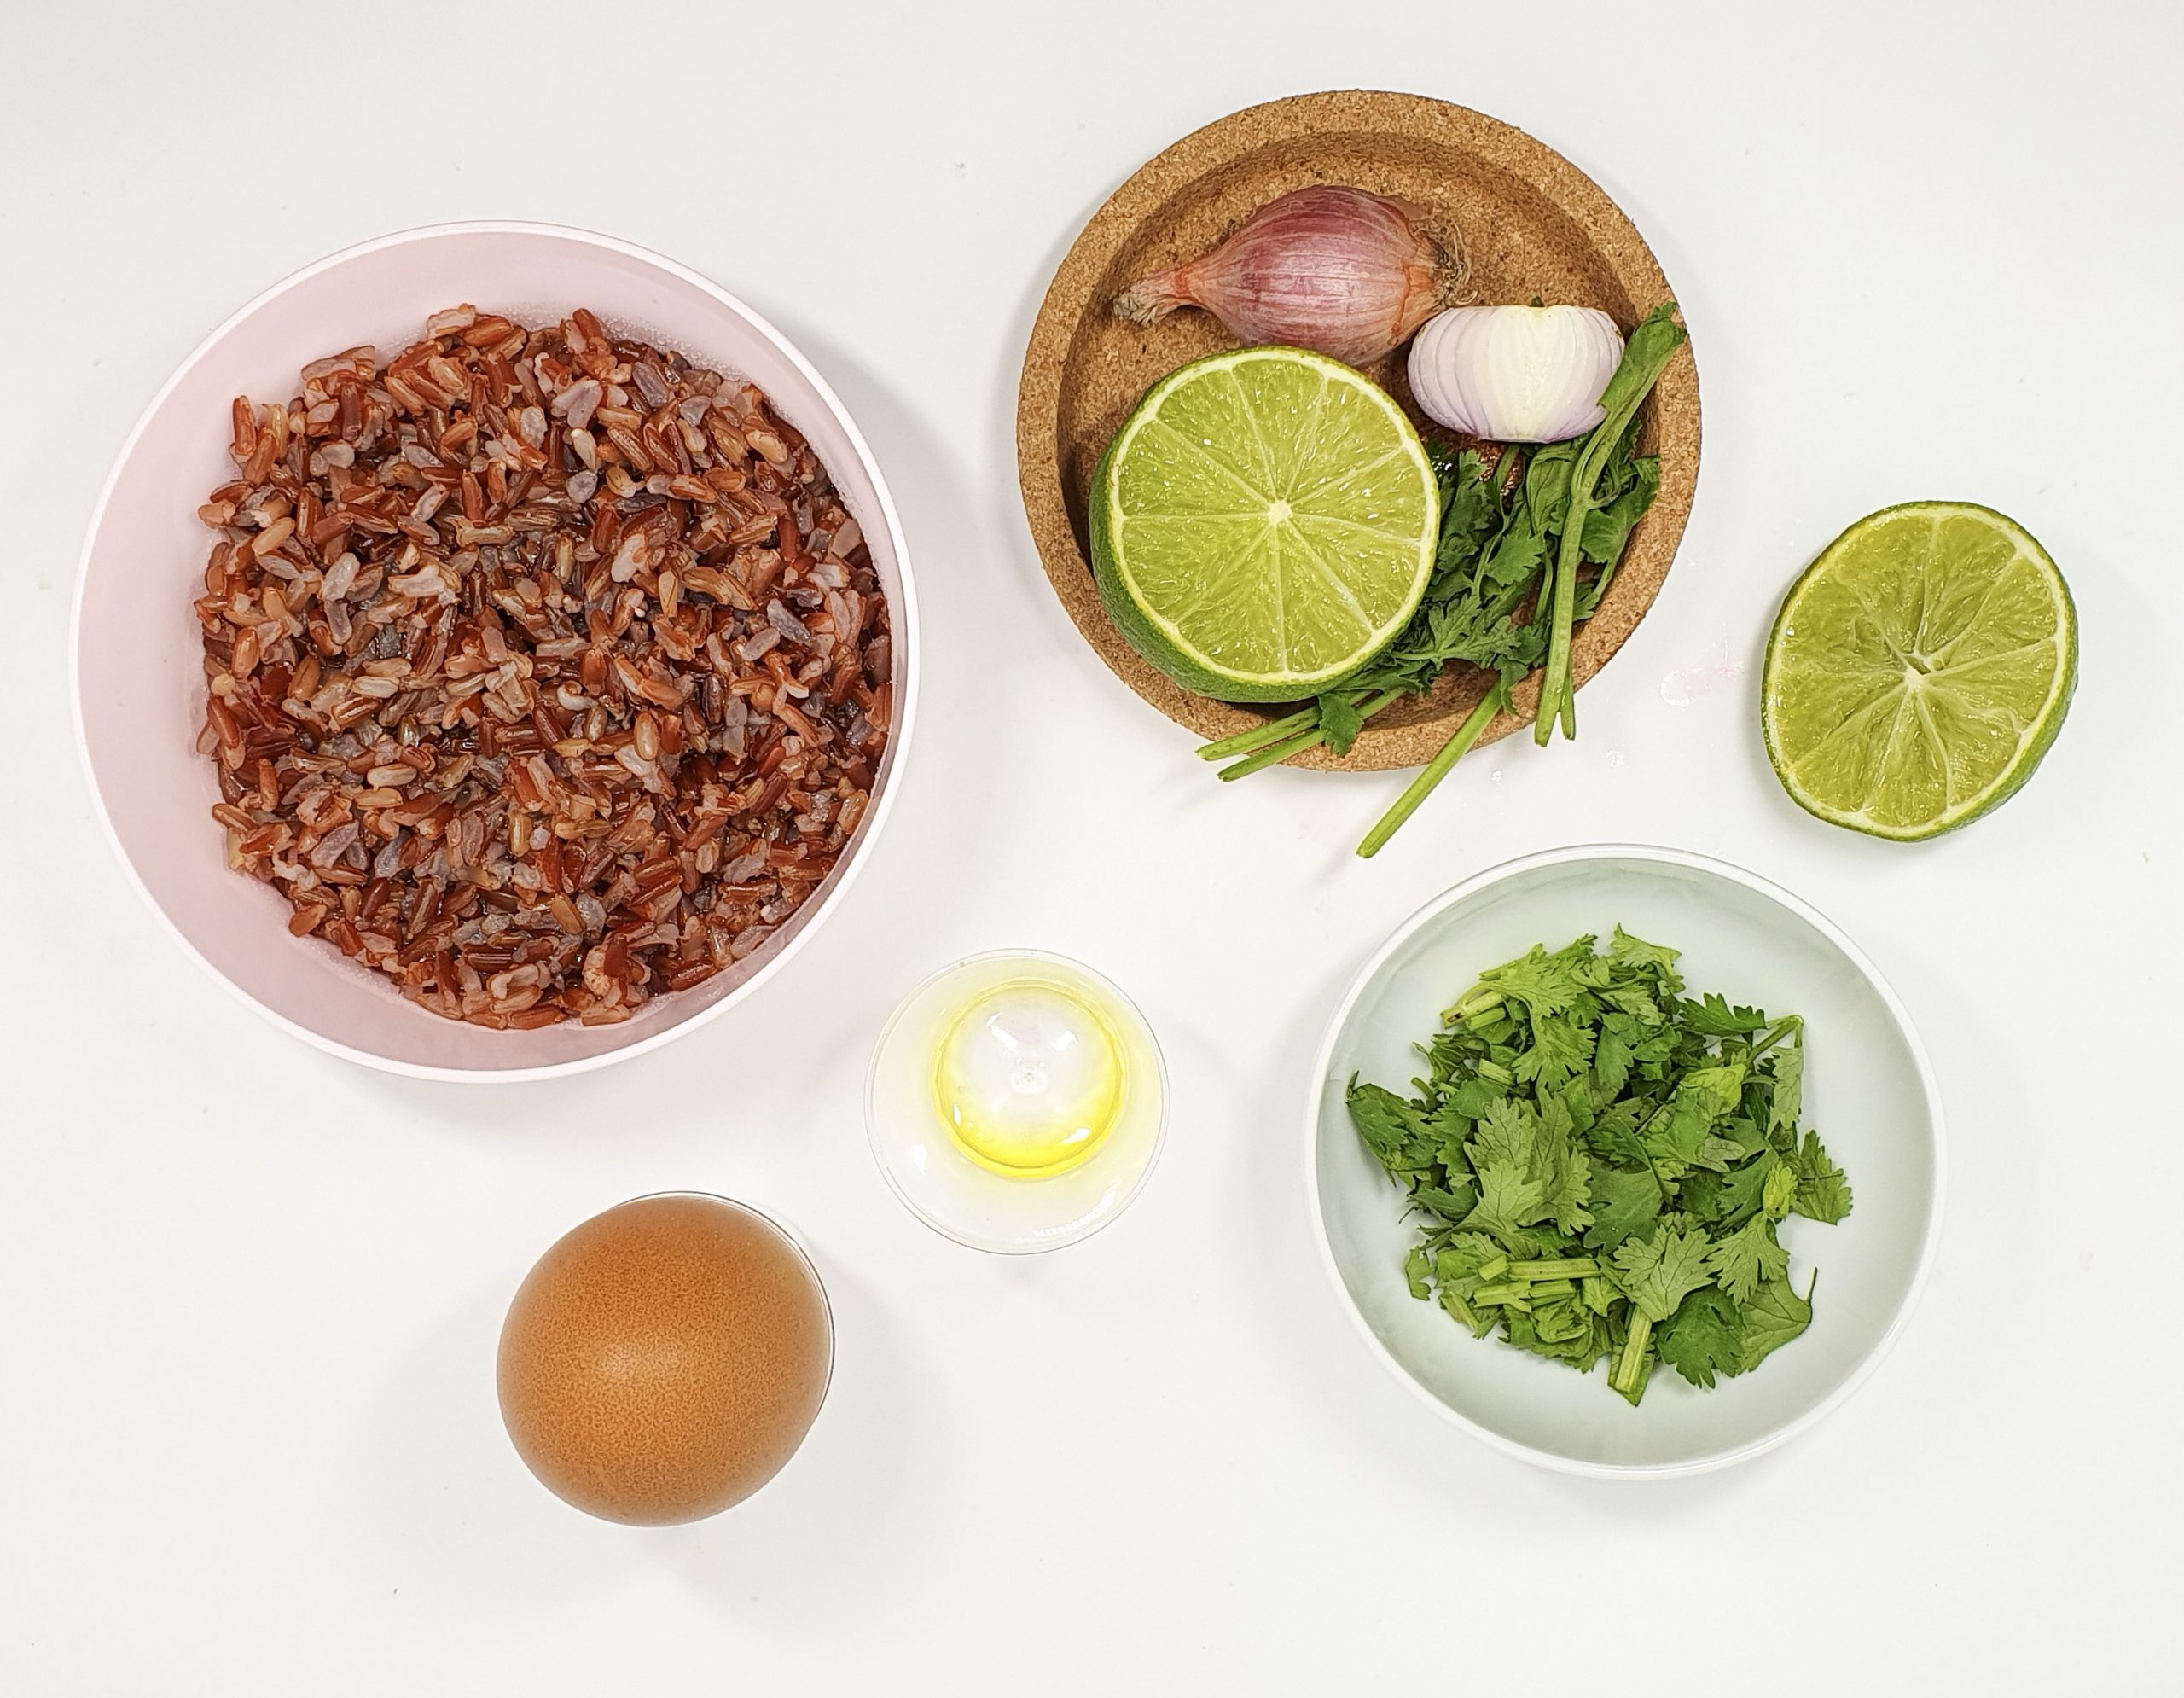 Flat lay image of the ingredients for this recipe